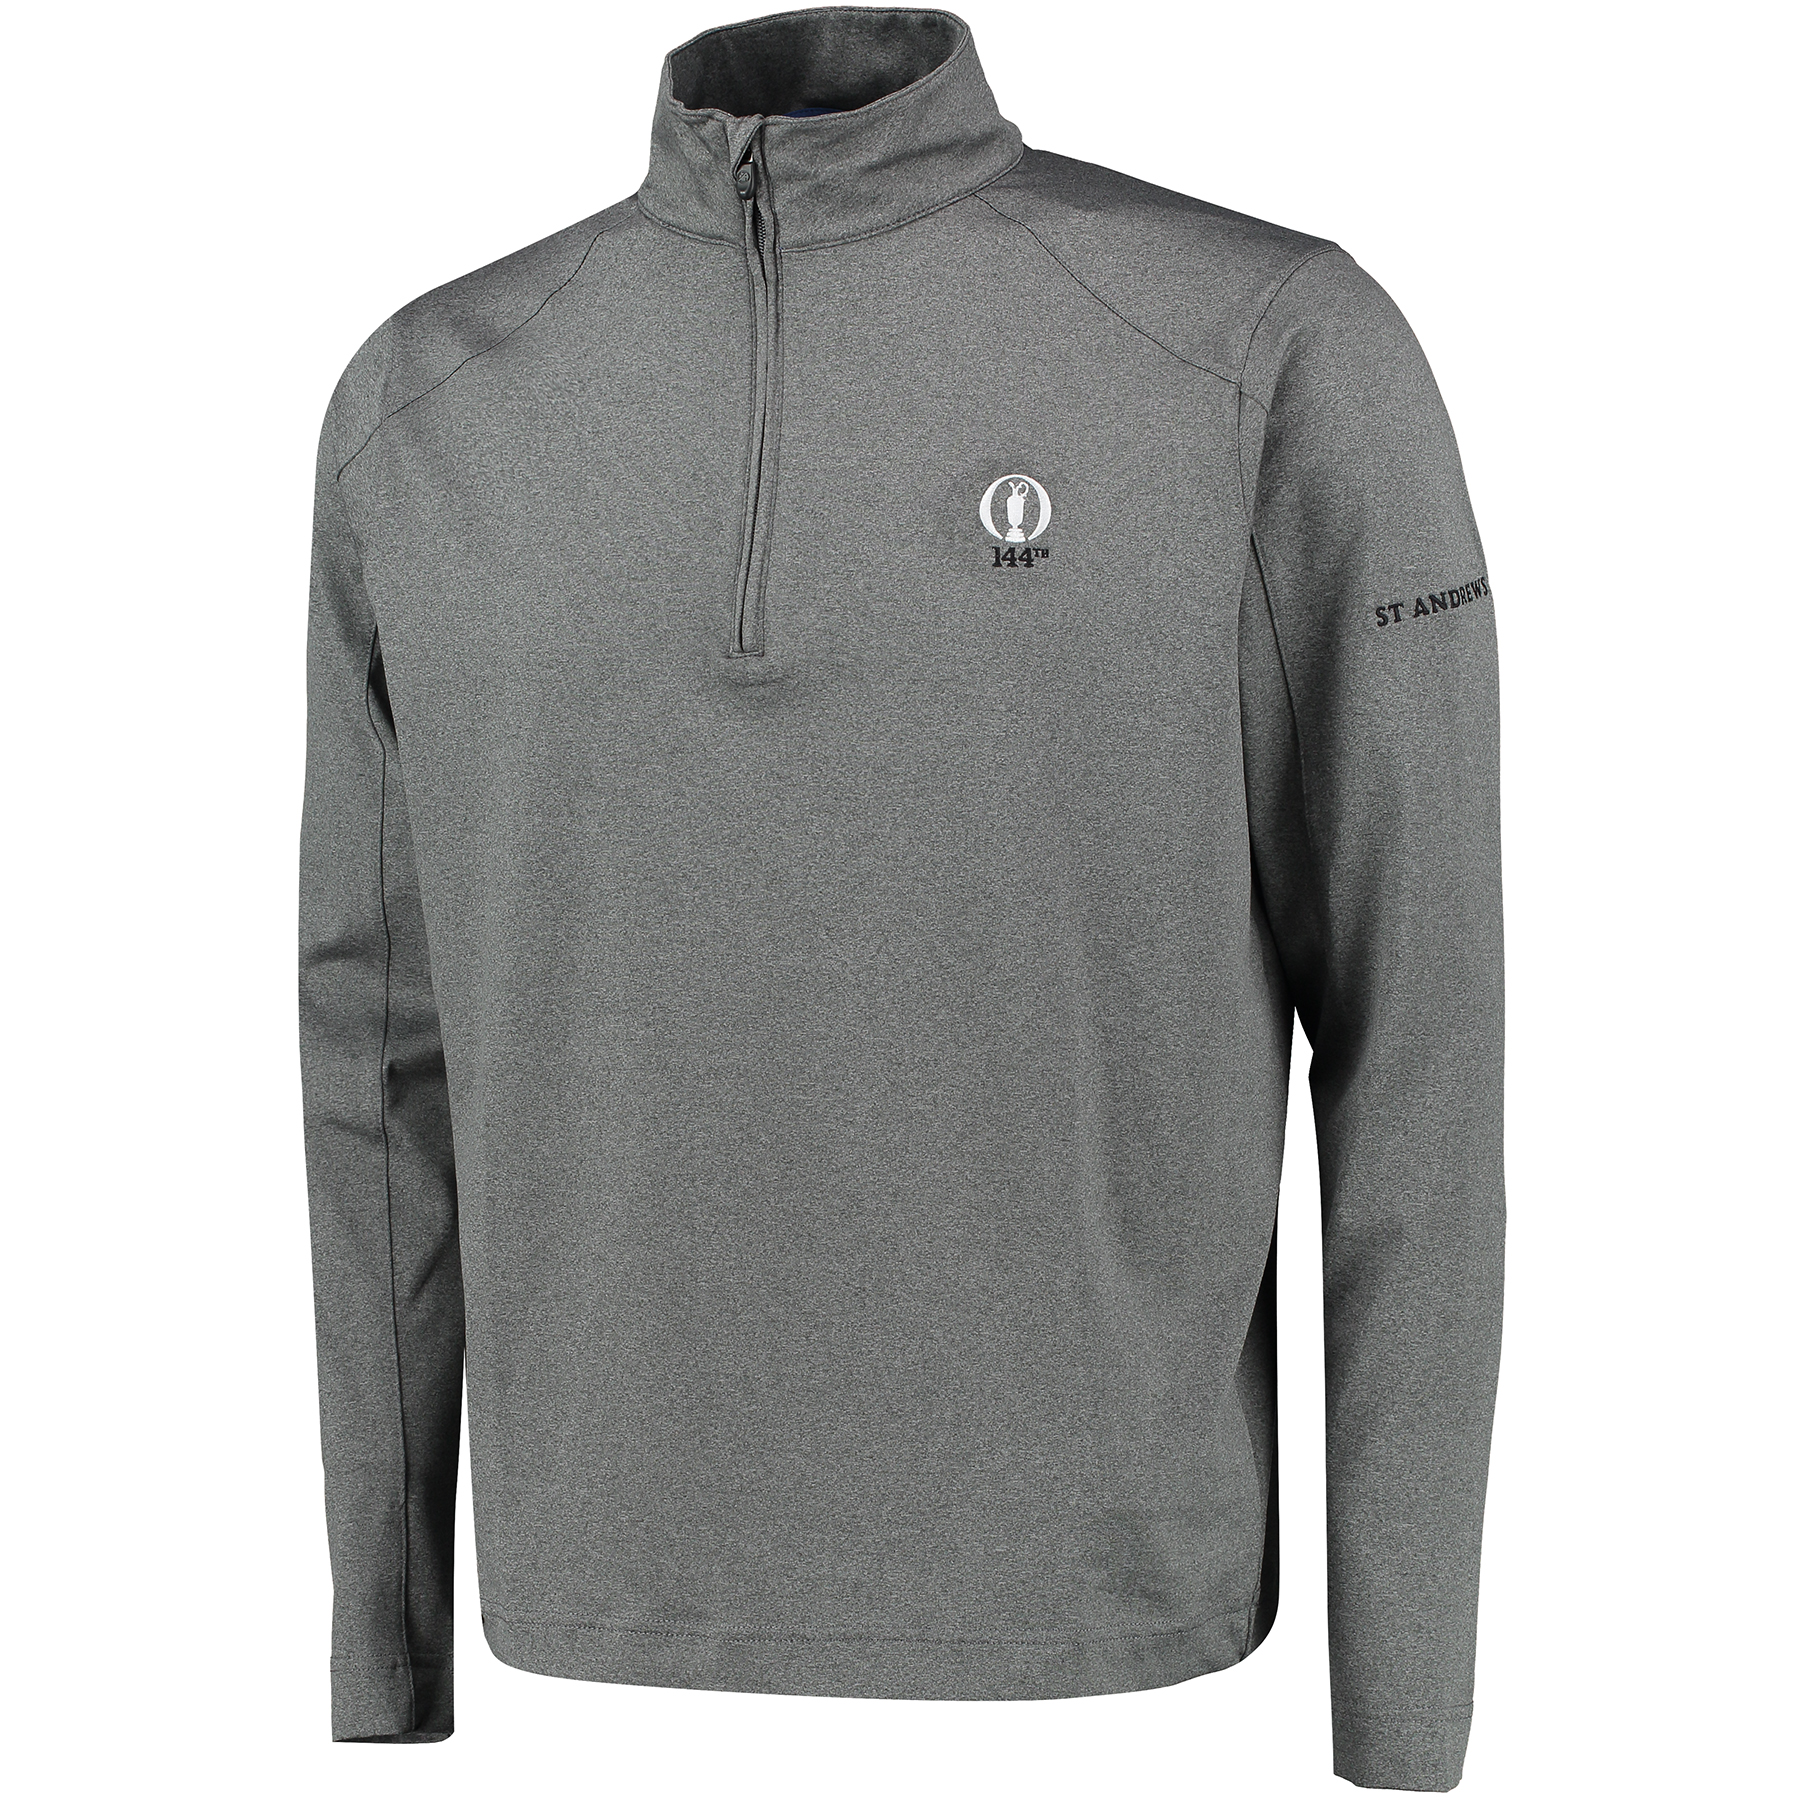 The Open 144th St Andrews Lenox Thermal Regulation Heather 1/2 Zip Pullover - Platinum Heather